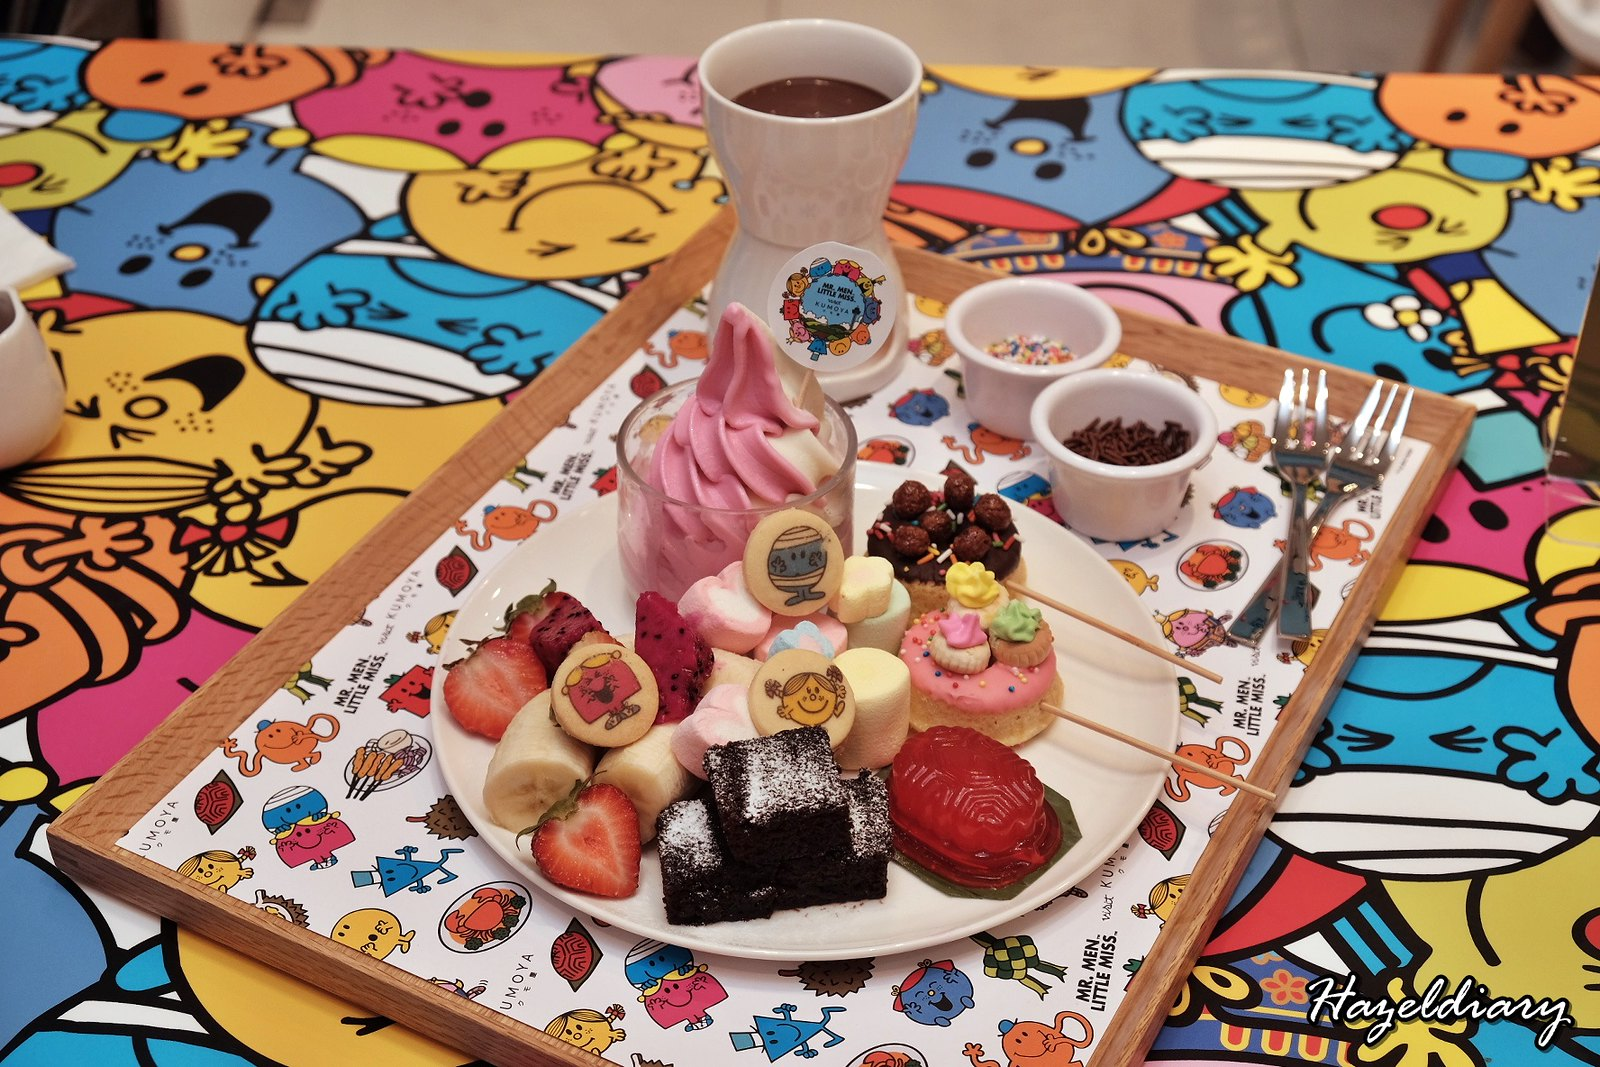 Kumoya Mr Men Little Miss-Mr Men and Little Miss Special Chocolate Fondue Platter